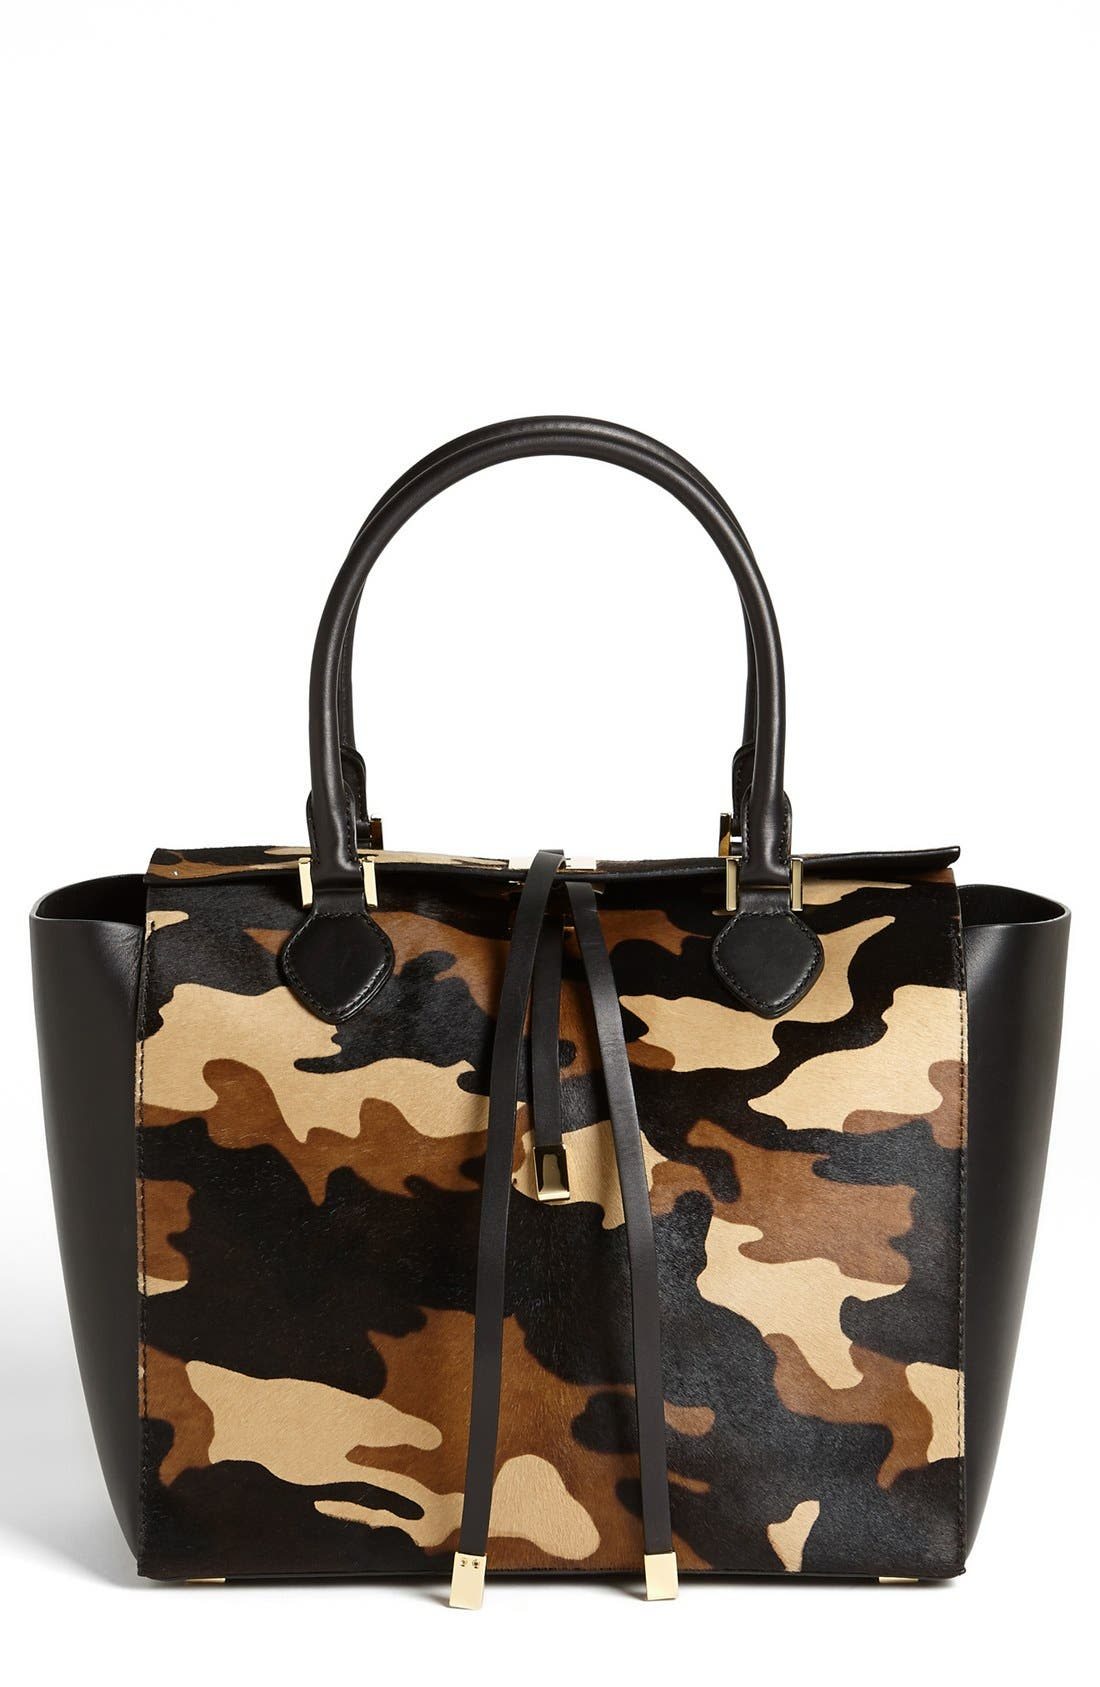 Alternate Image 1 Selected - Michael Kors 'Miranda' Calf Hair & Leather Tote